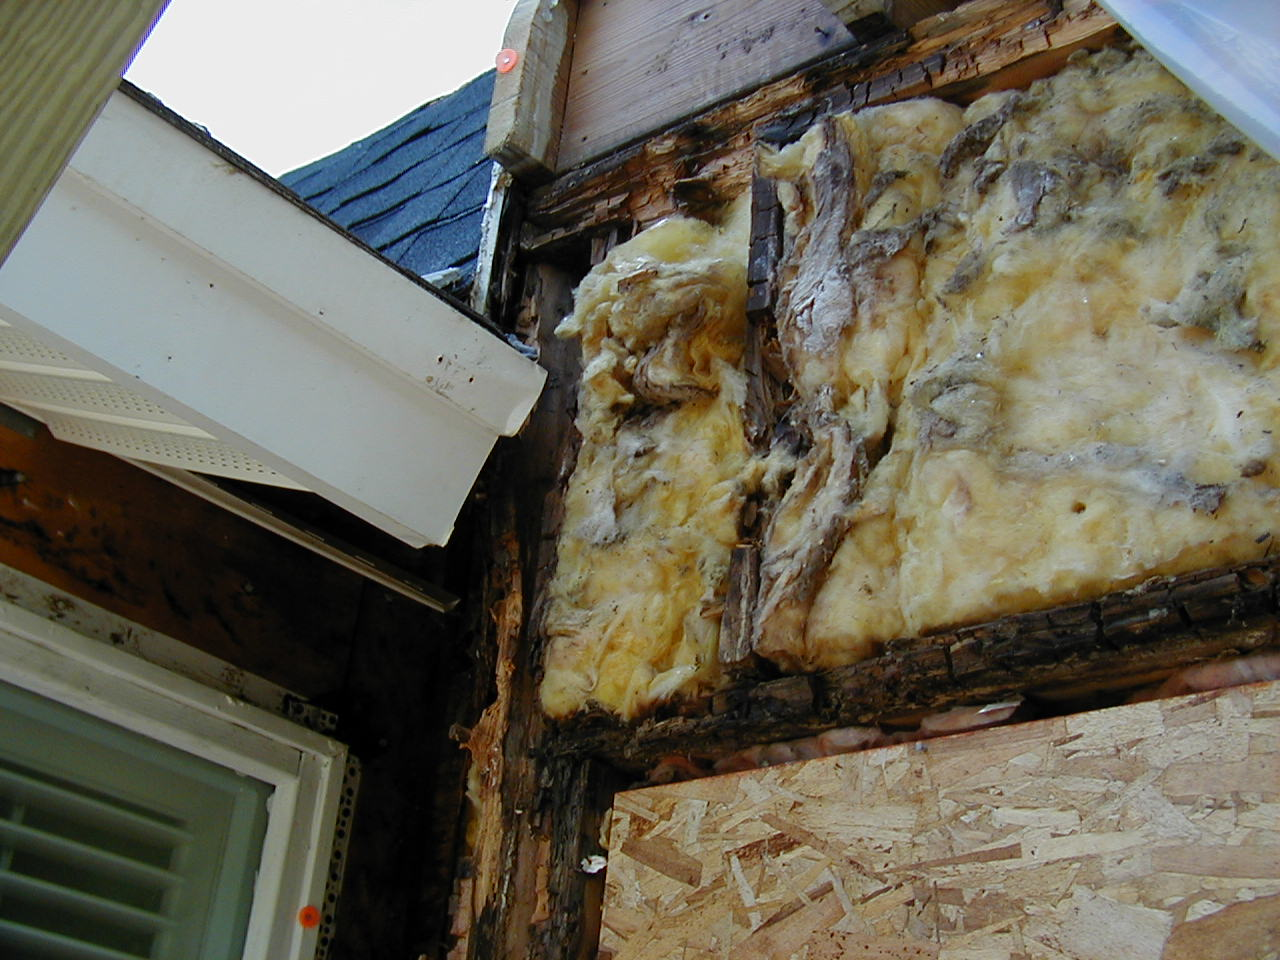 Damage Behind Gutter